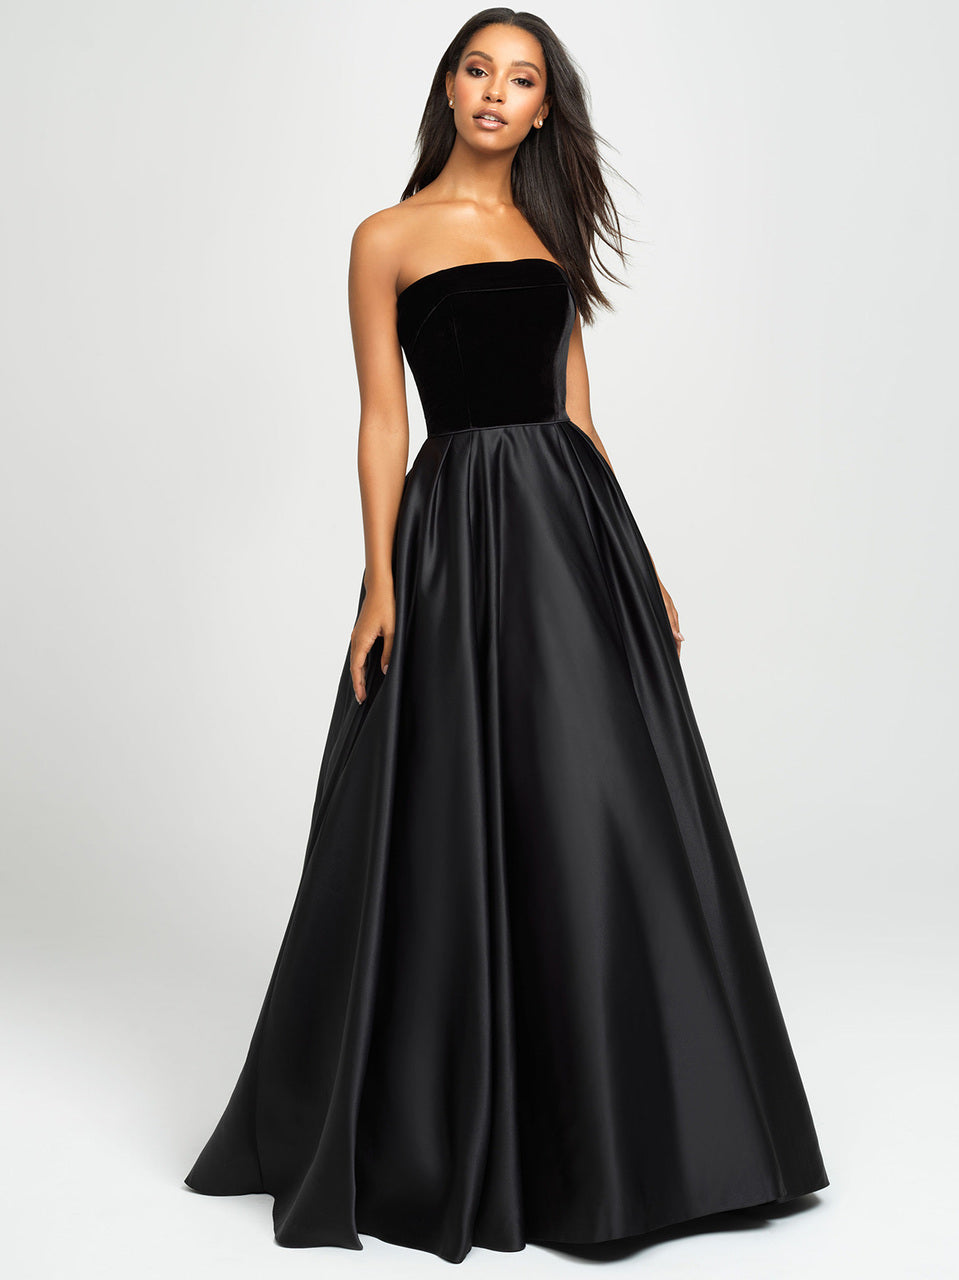 Black Strapless Velvet Bodice Dress